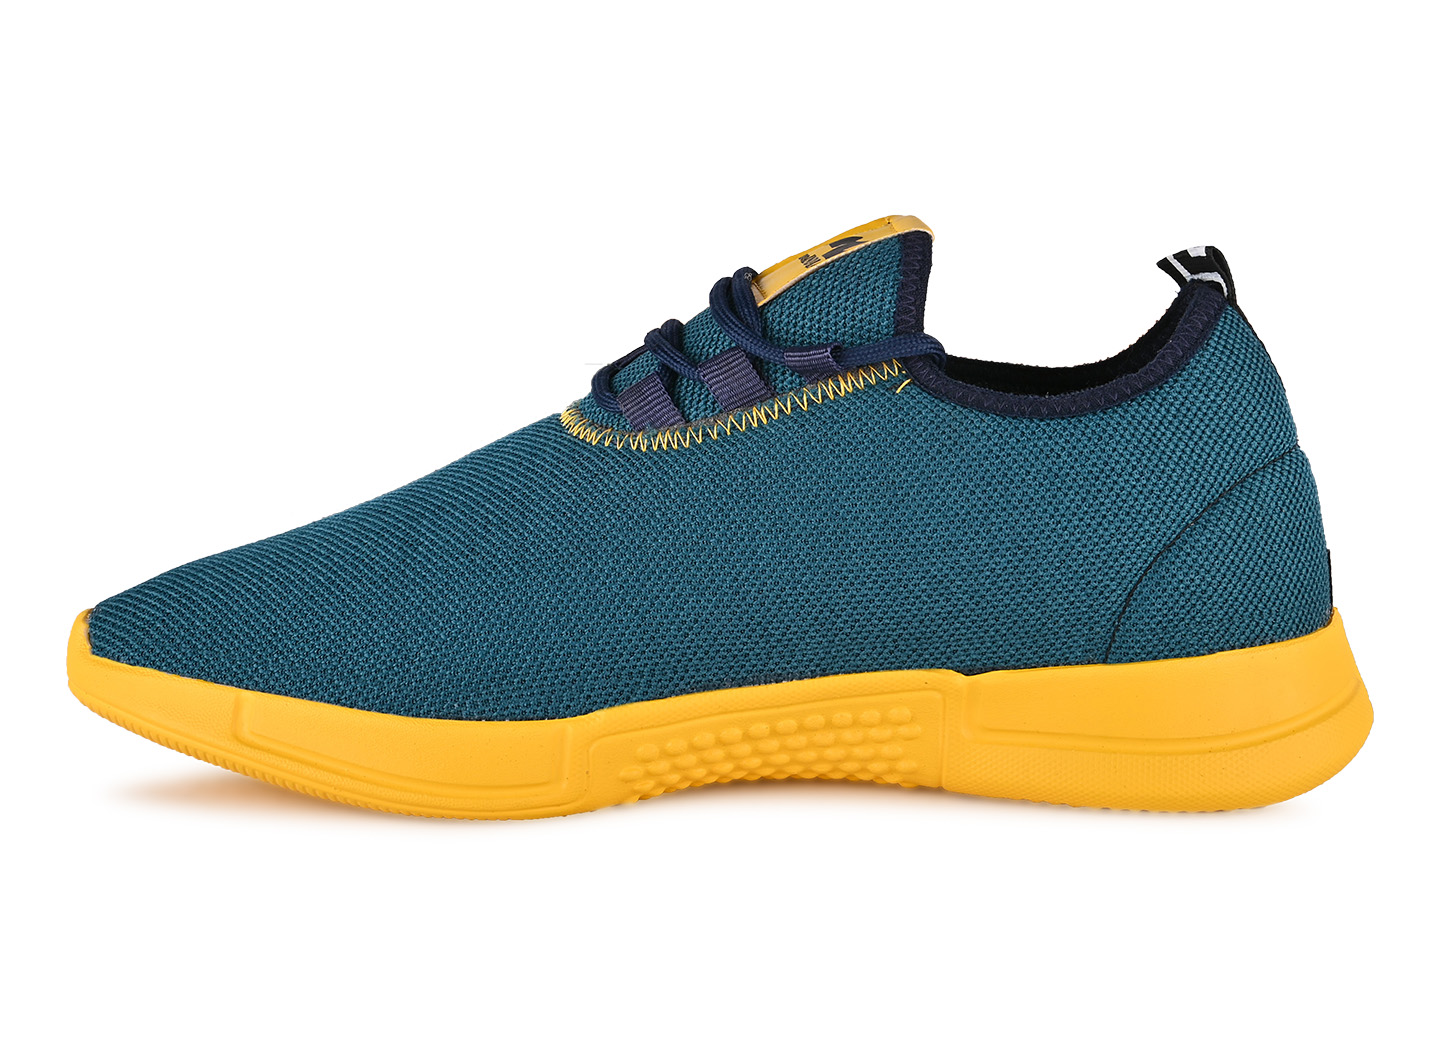 JK PORT Comfortable And Trendy Sports Shoes JKPSB61GRNY Are Reliable For Any Sports (Green,6-10,8 PAIR)